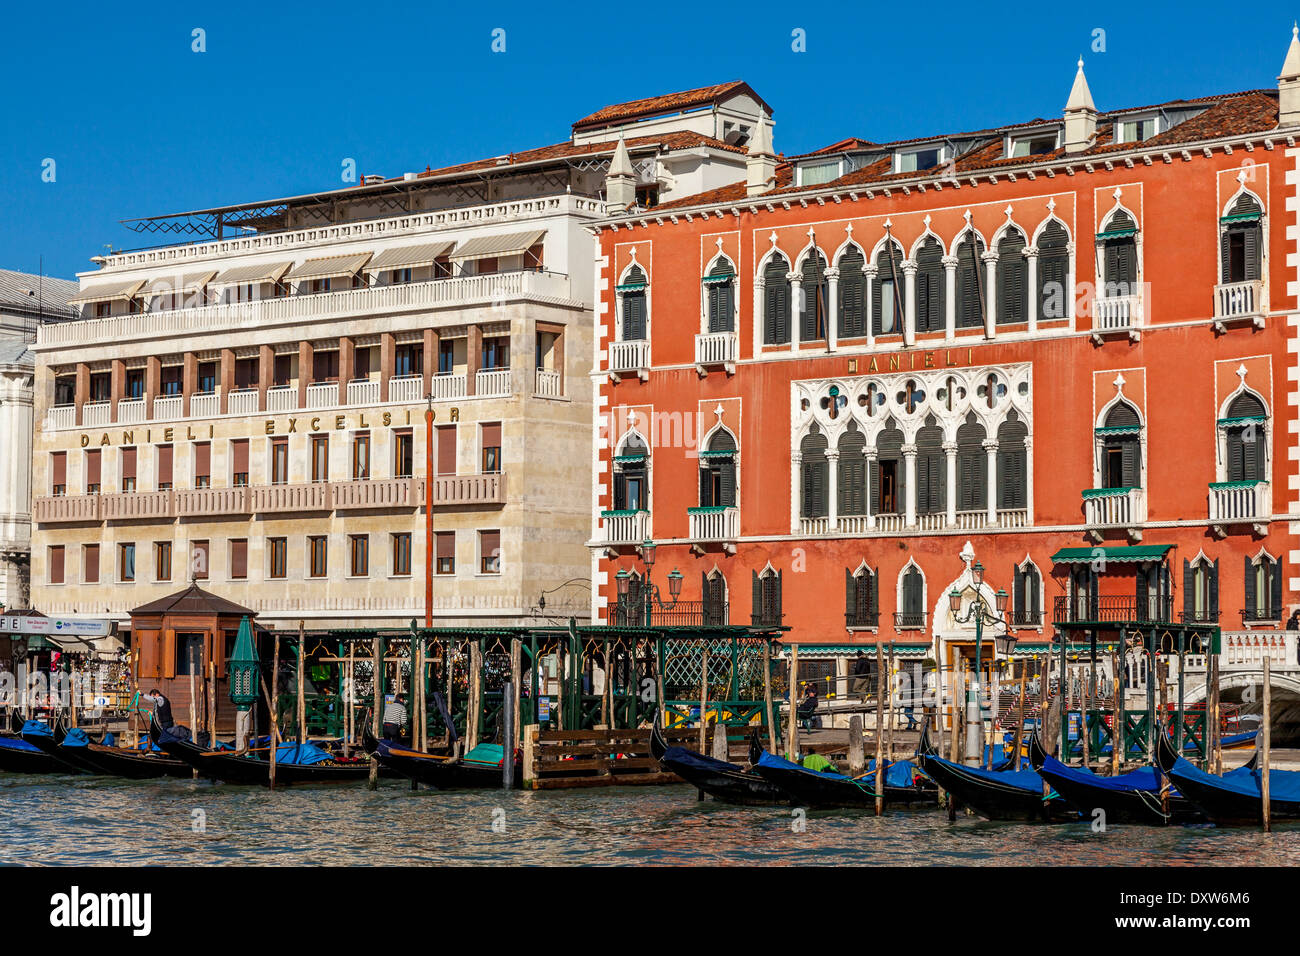 Hotel Excelsior Venice Stock Photos Hotel Excelsior Venice